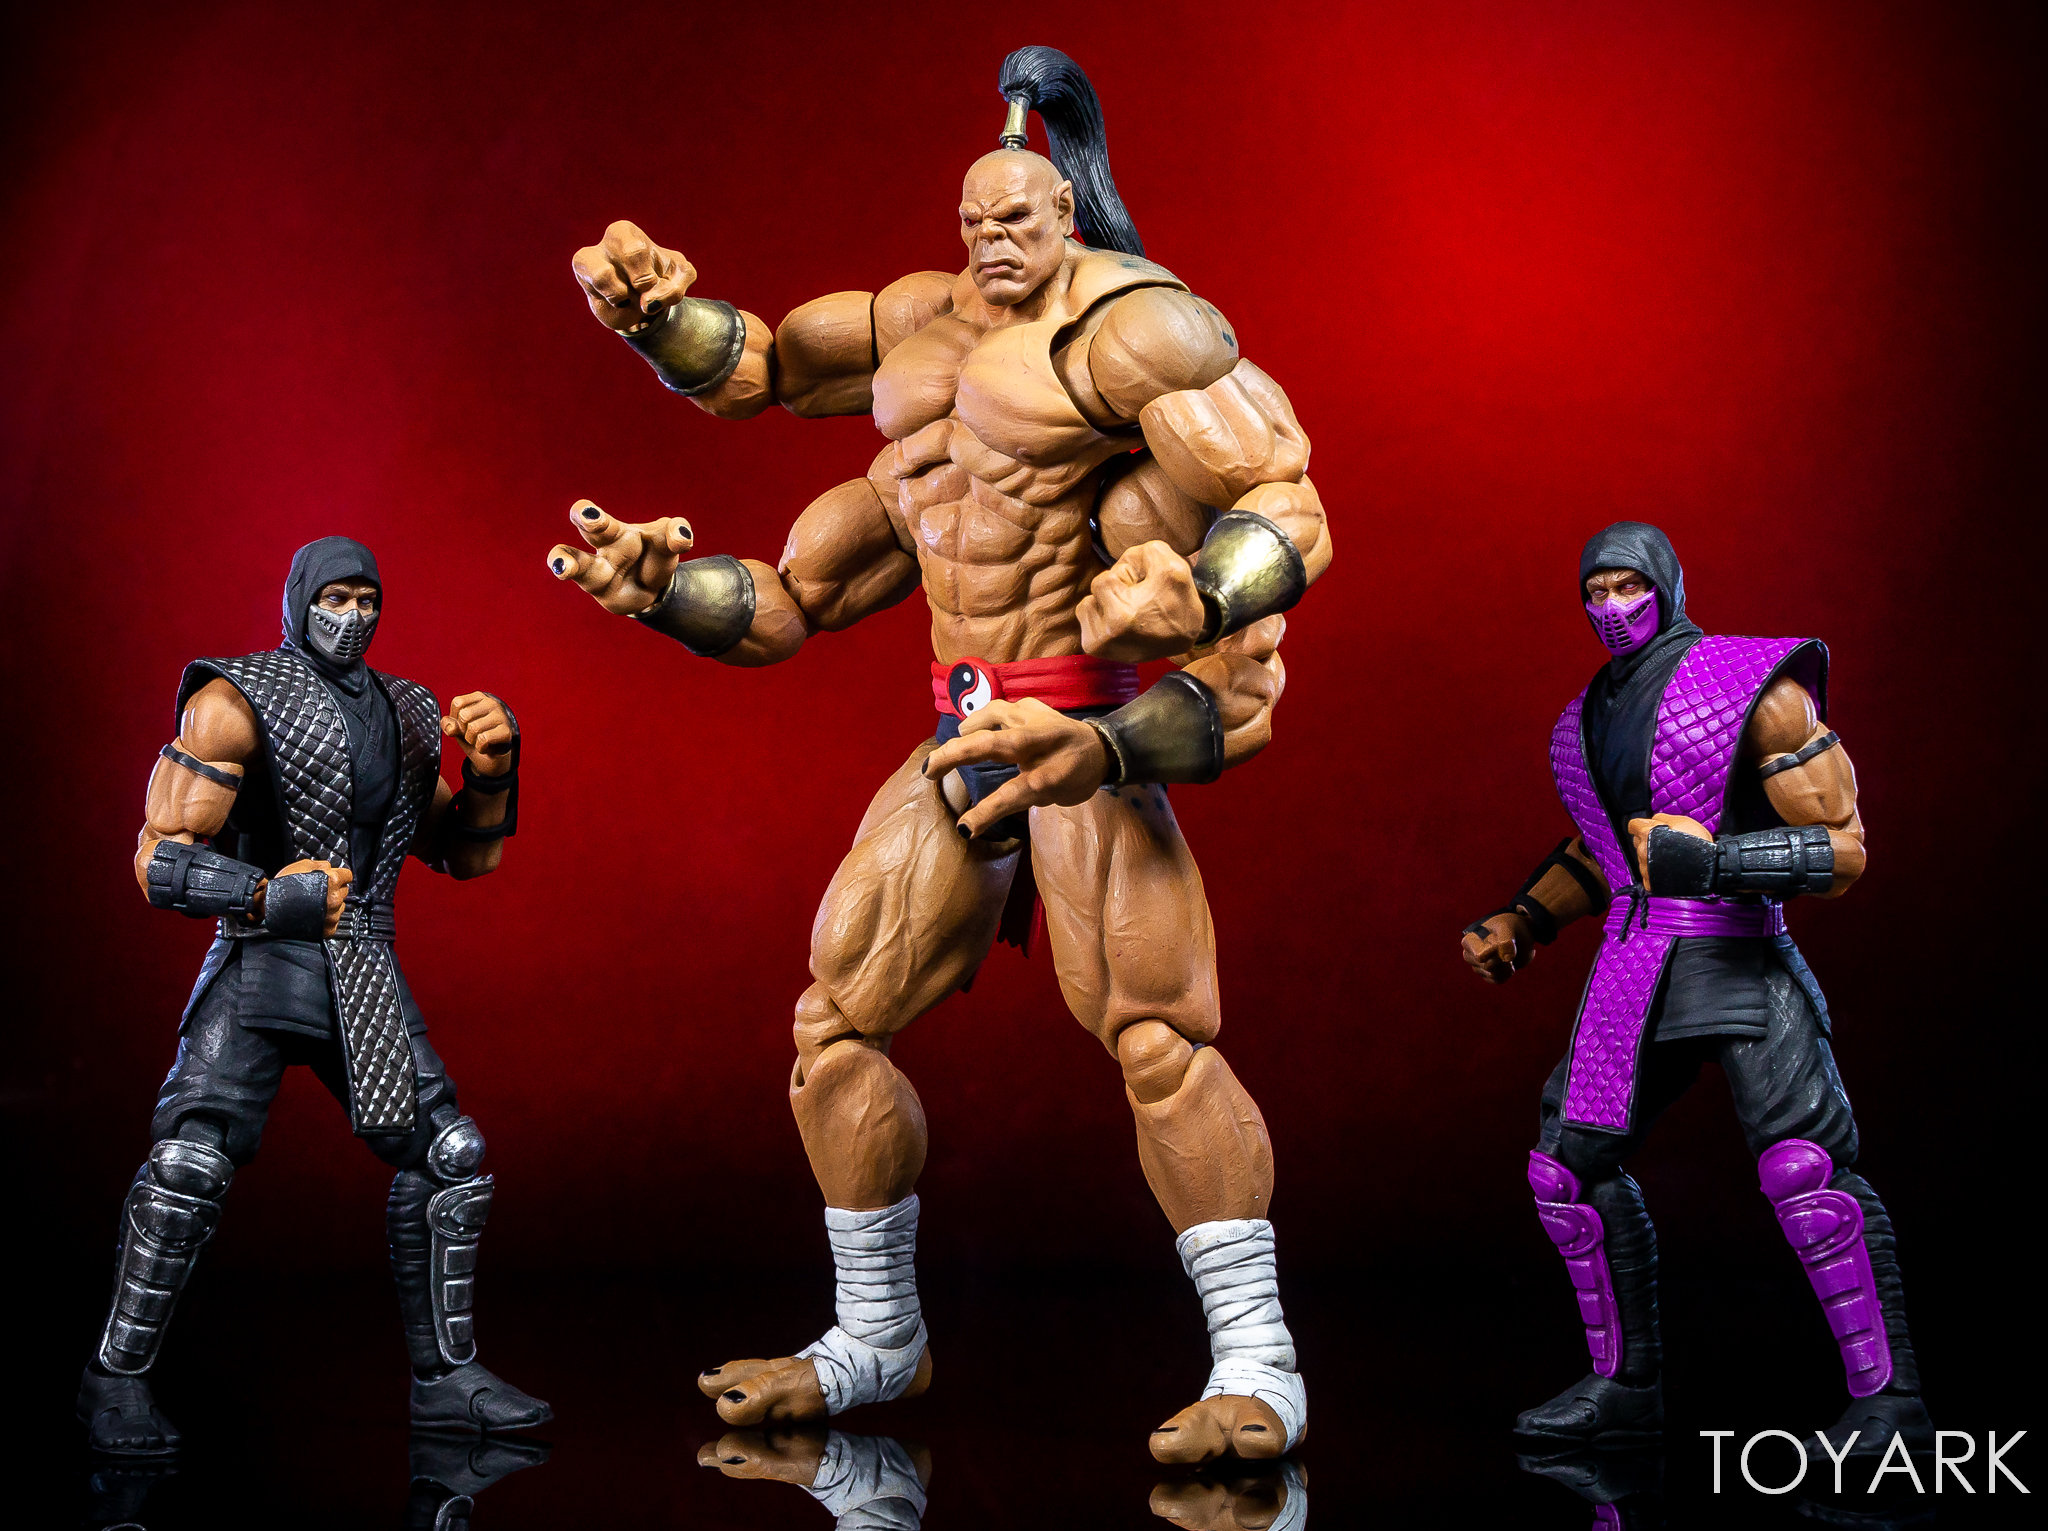 https://news.toyark.com/wp-content/uploads/sites/4/2018/12/Storm-NYCC-18-Mortal-Kombat-Figures-010.jpg